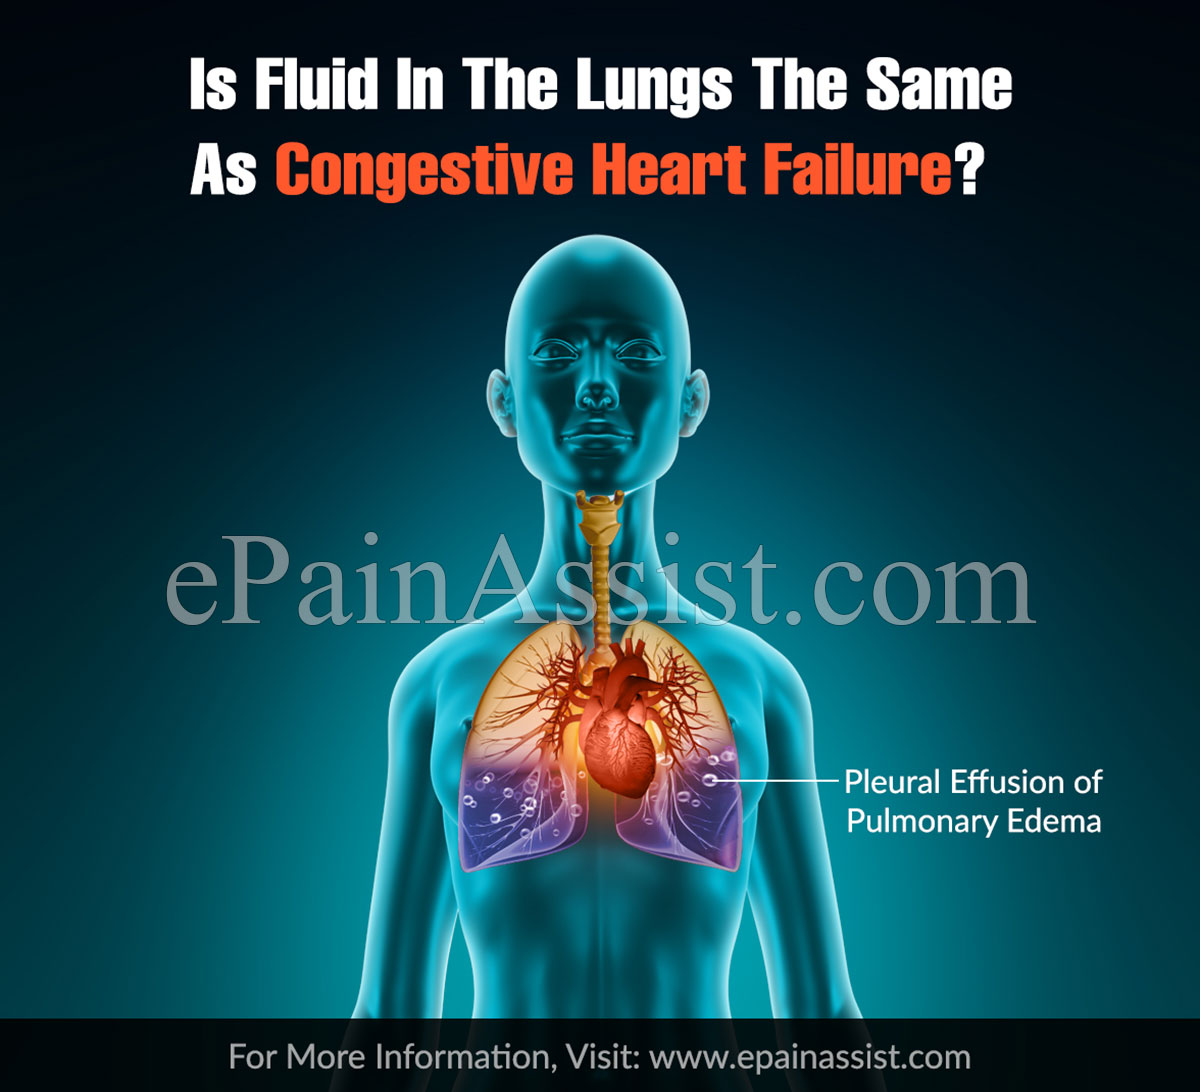 Is Fluid In The Lungs The Same As Congestive Heart Failure?